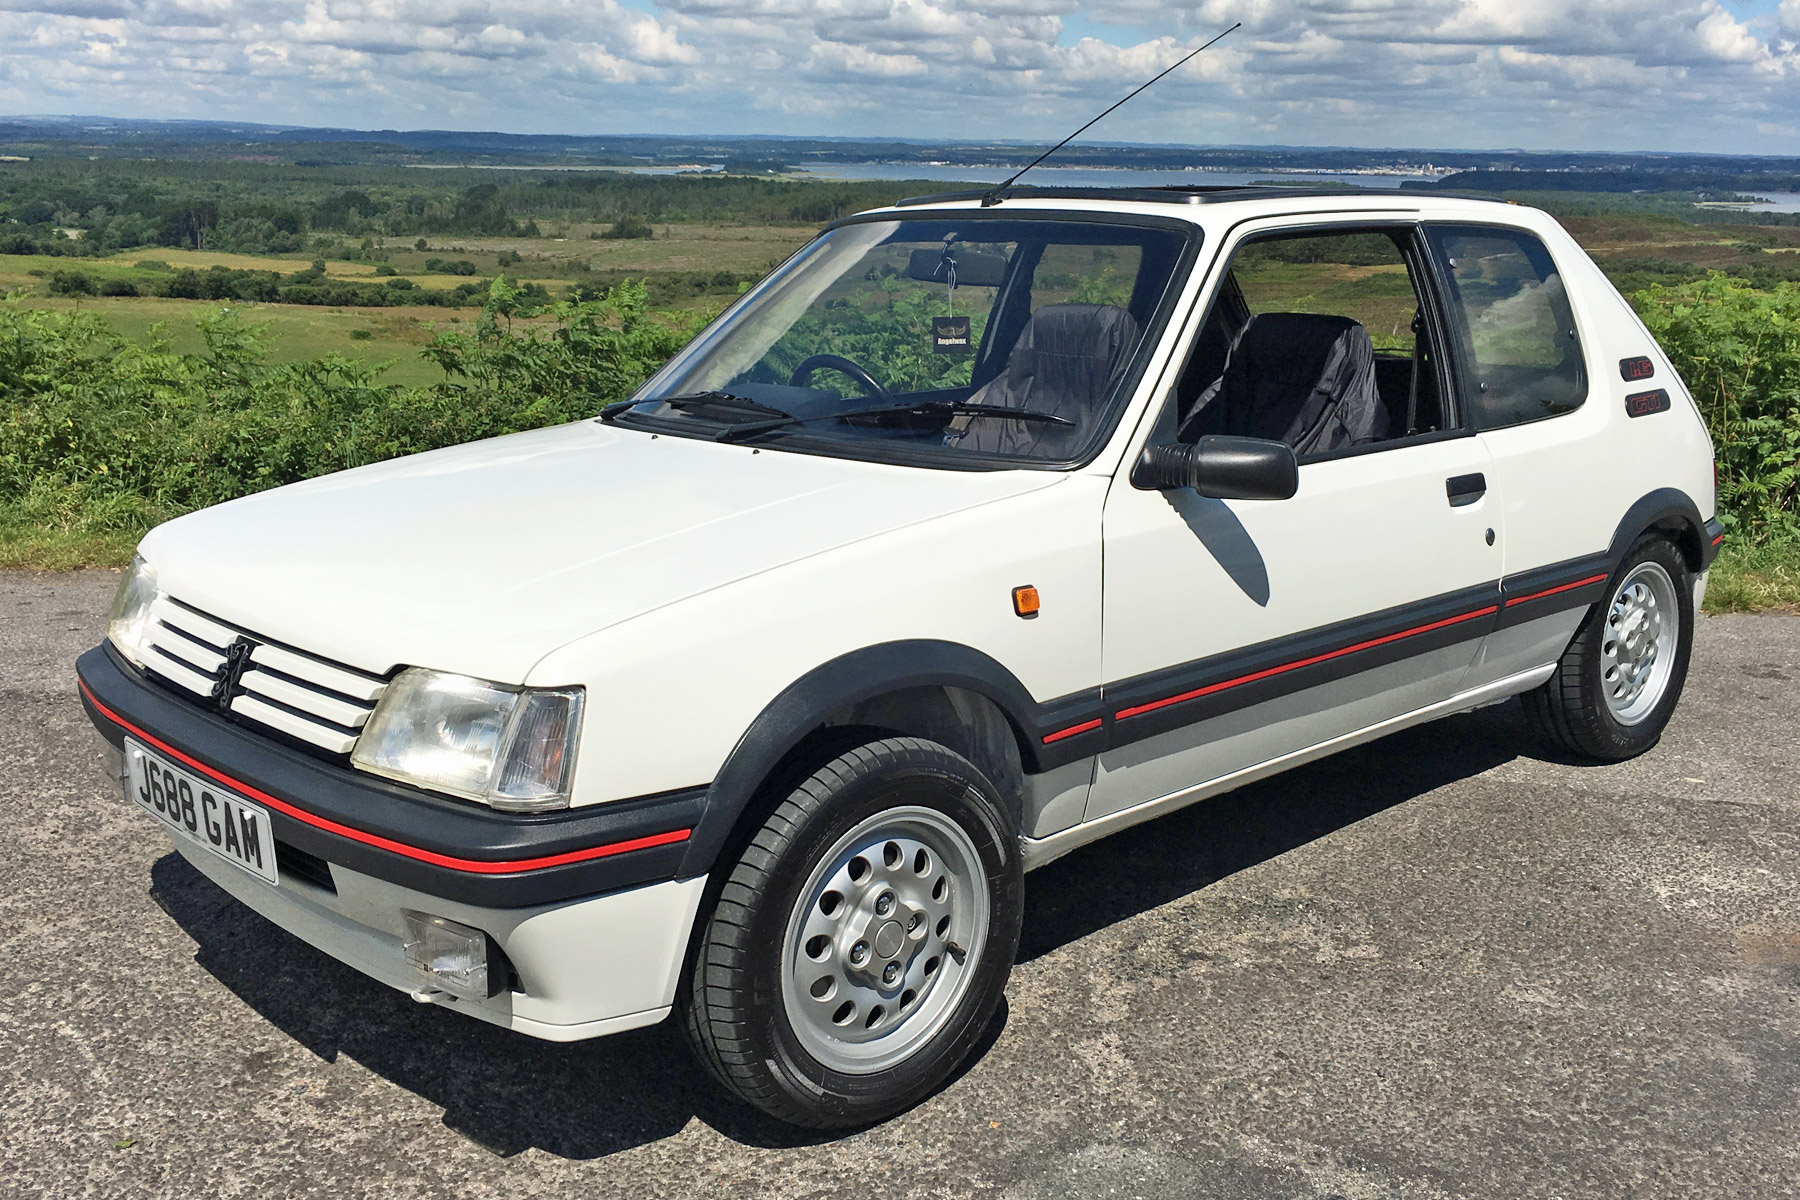 peugeot 205 gti 1 6 vs peugeot 205 gti mi16 retro road test motoring research. Black Bedroom Furniture Sets. Home Design Ideas